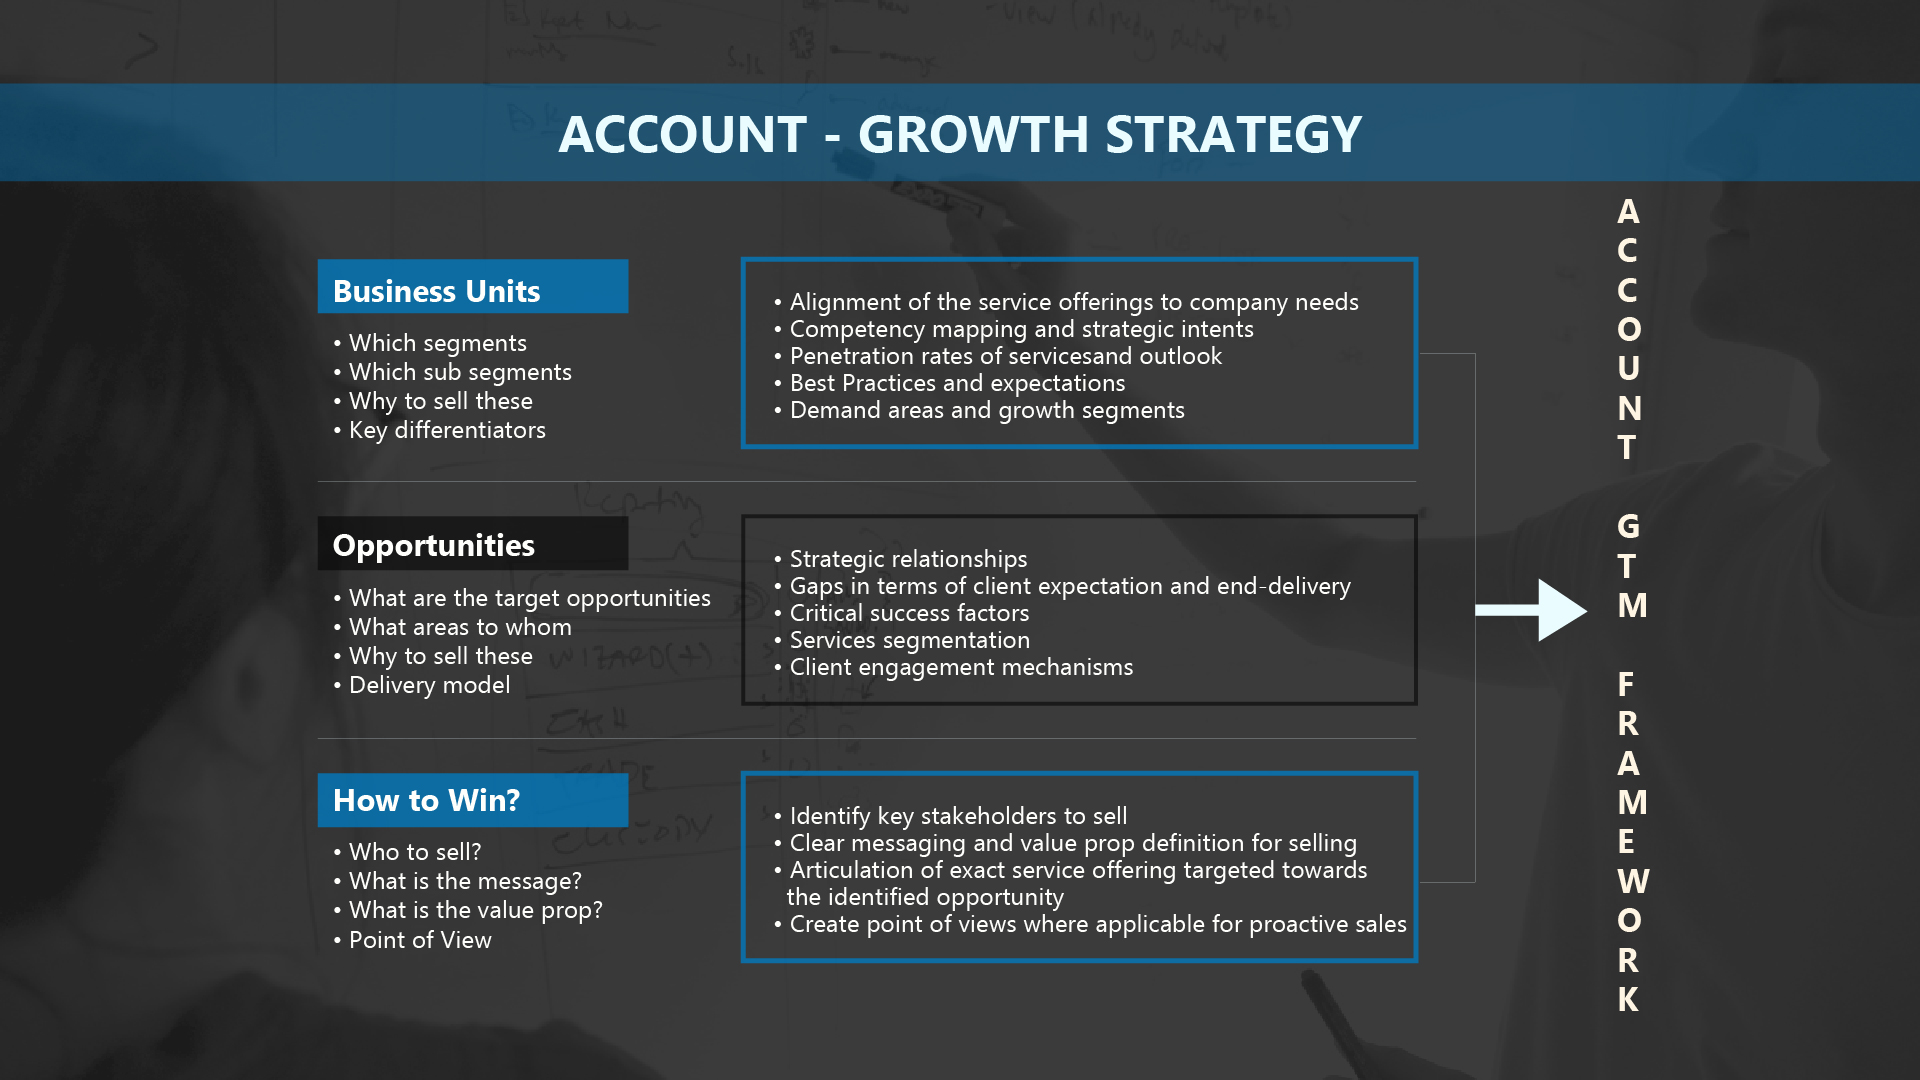 helping technology providers identify growth opportunities in existing accounts and venture into new accounts through a structured account strategy - Account Technology